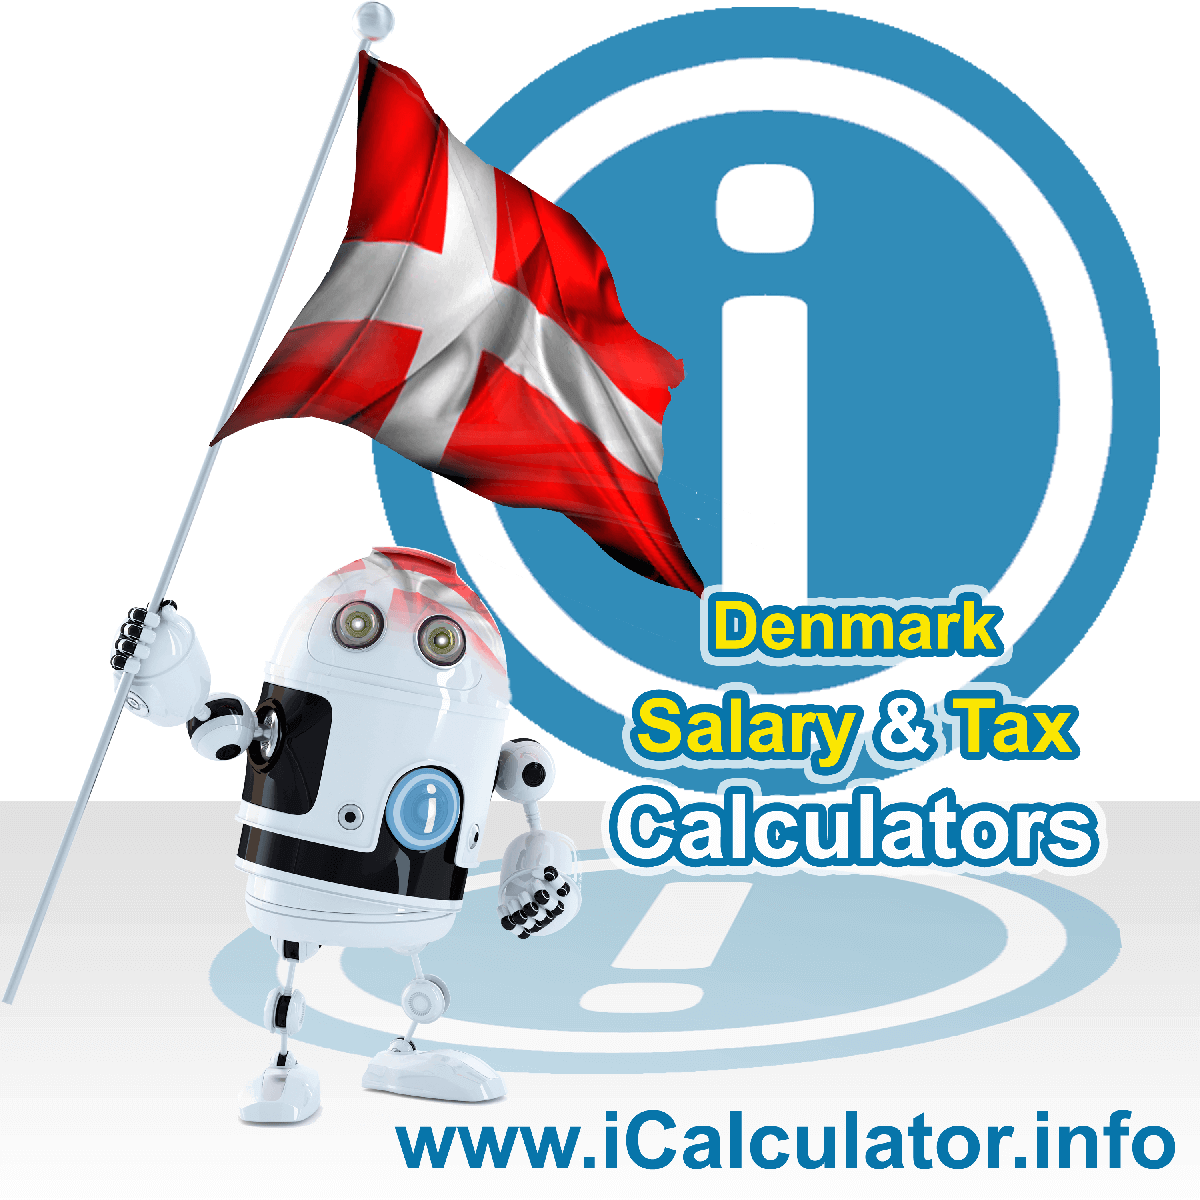 Denmark Tax Calculator. This image shows the Denmark flag and information relating to the tax formula for the Denmark Salary Calculator